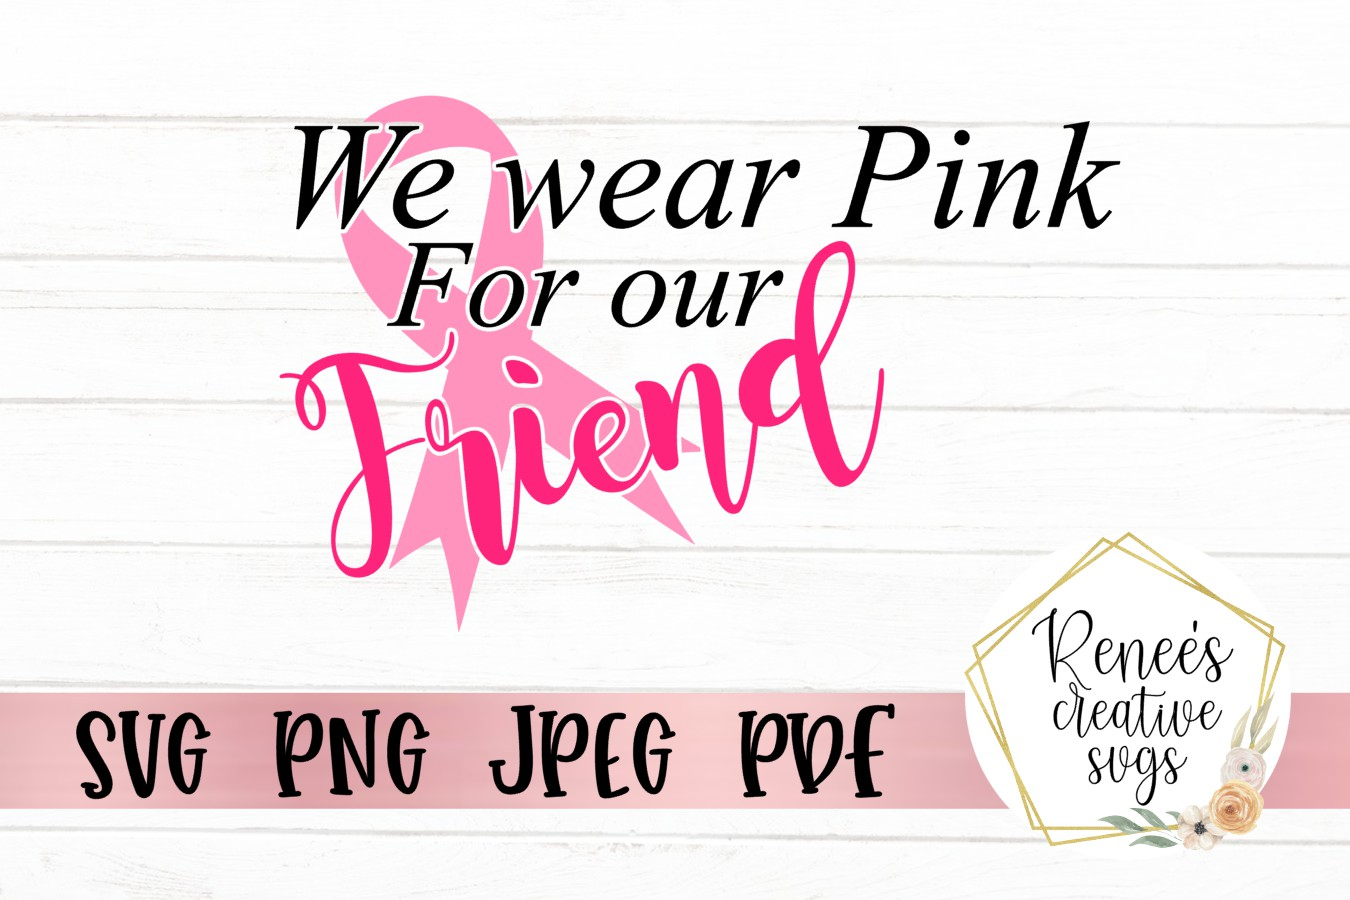 We wear pink for our friend|Breast cancer awareness SVG example image 2